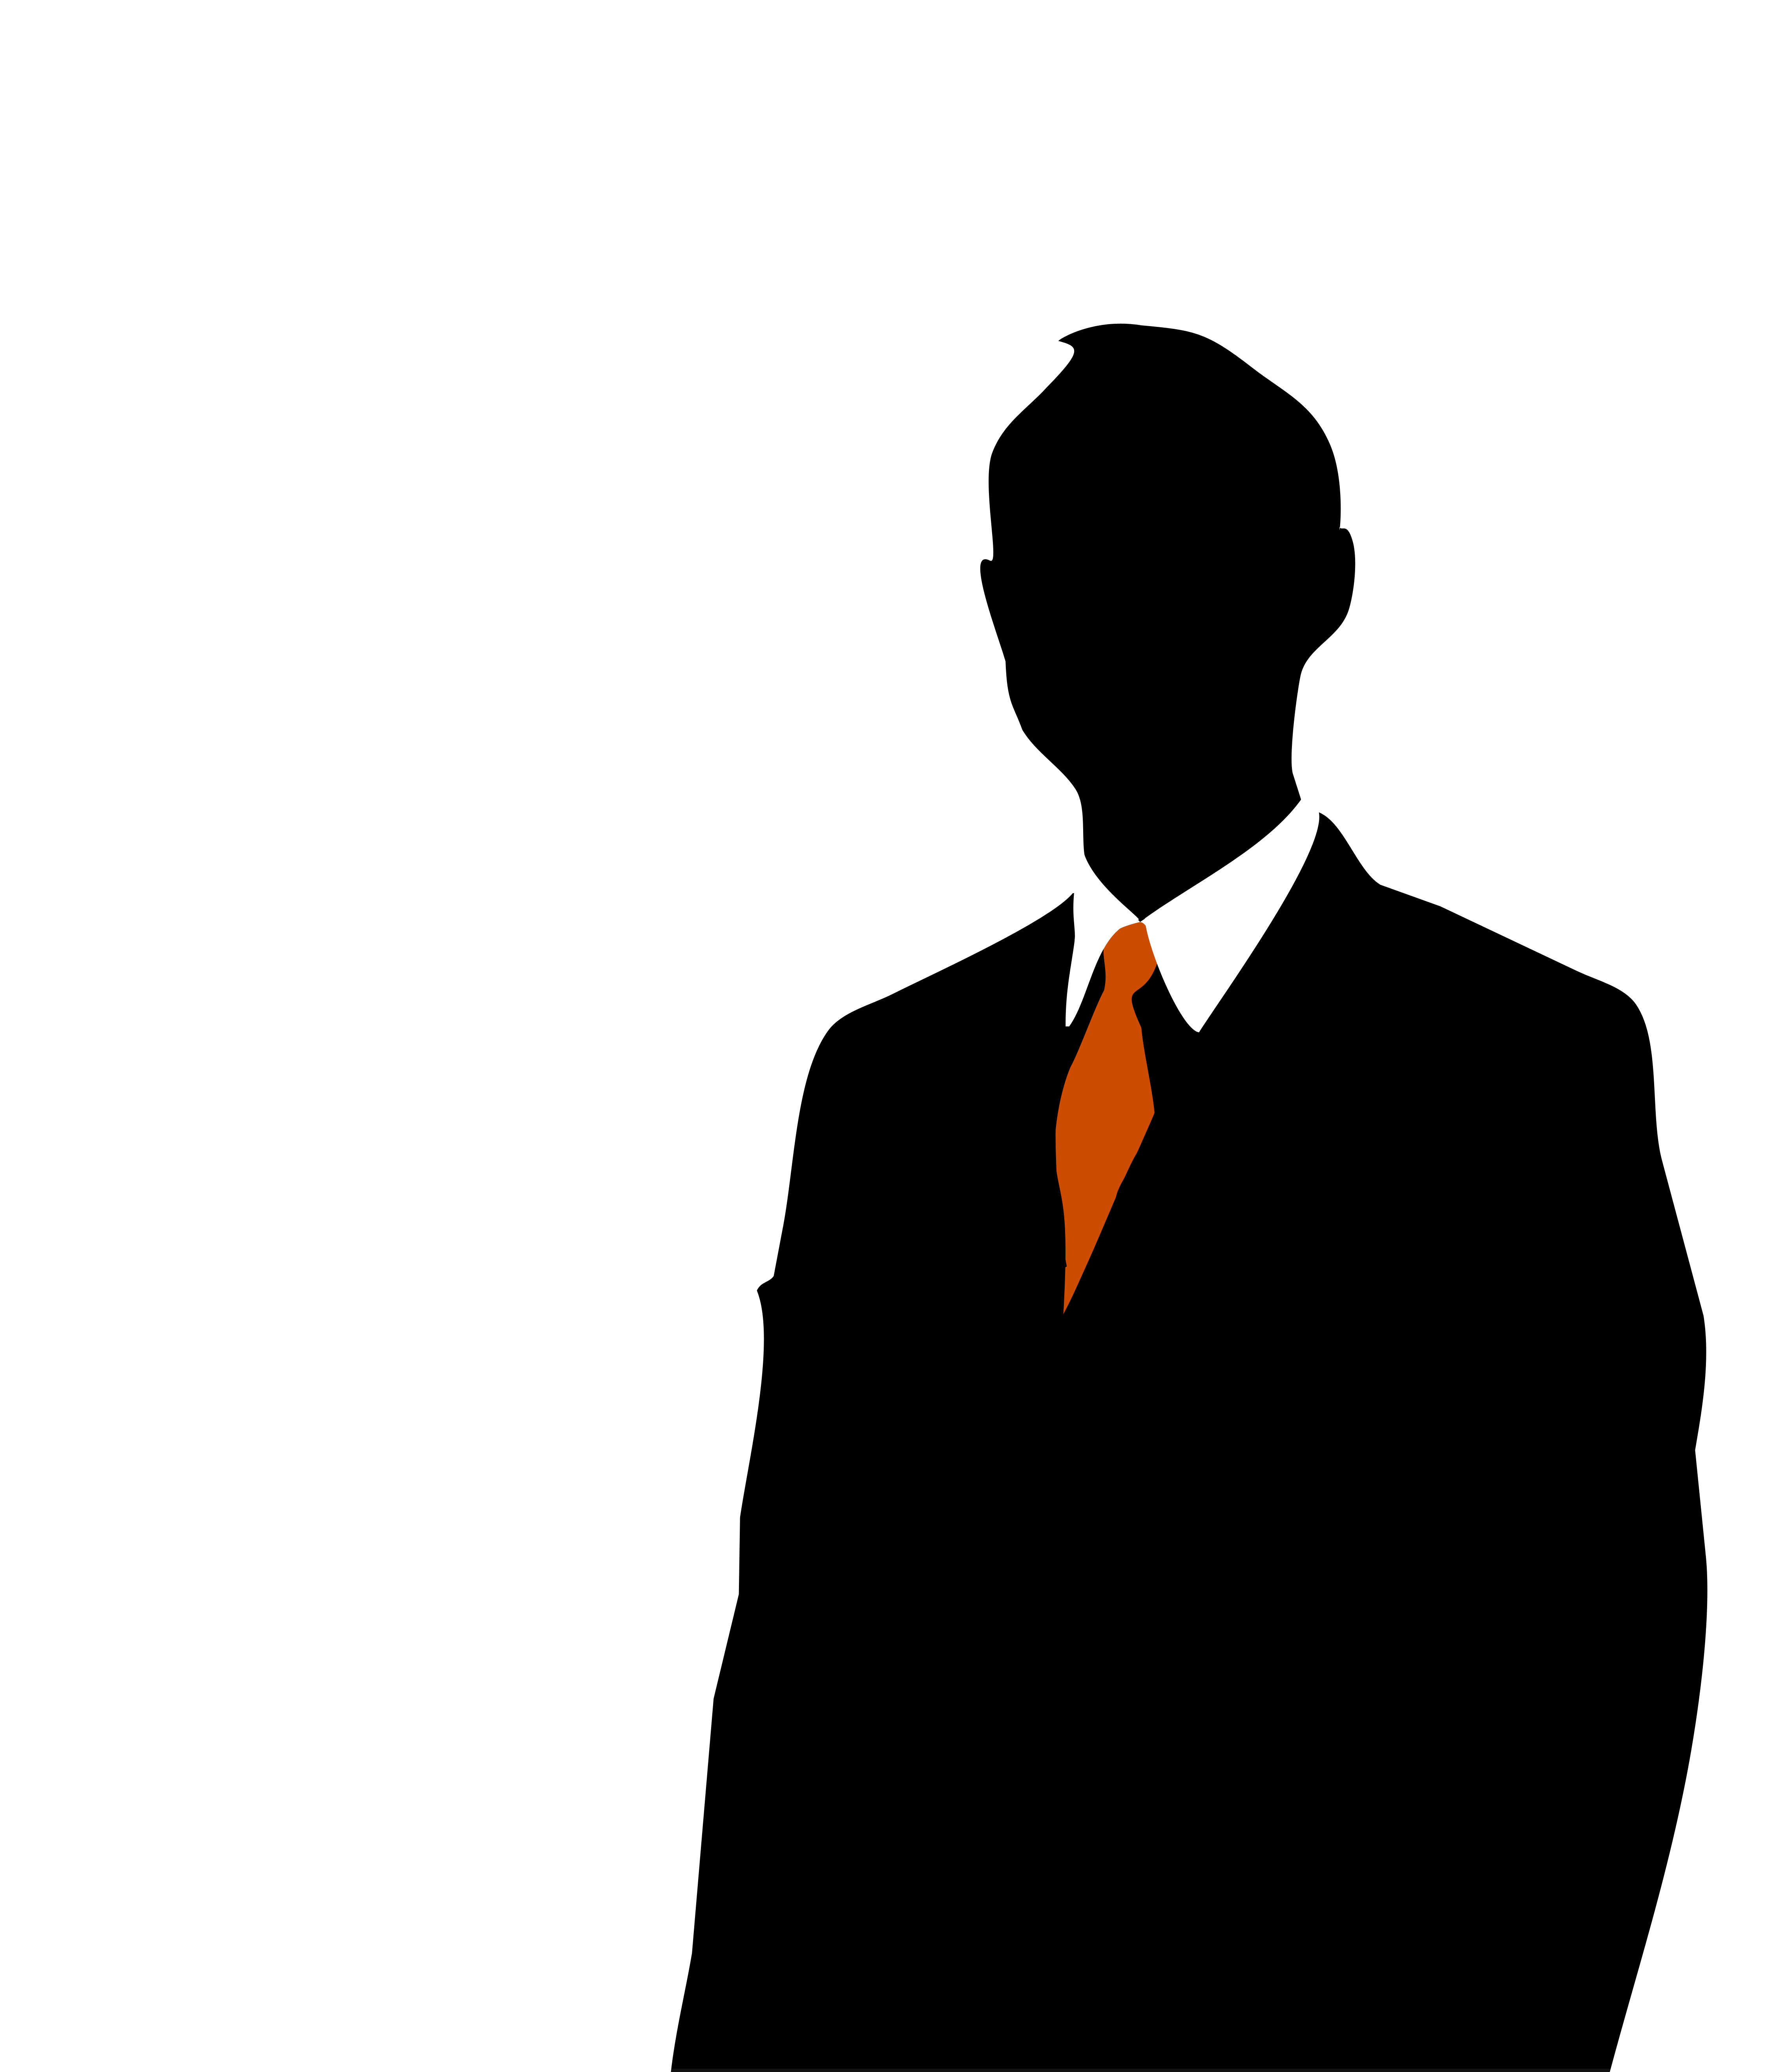 Business Person Silhouette.